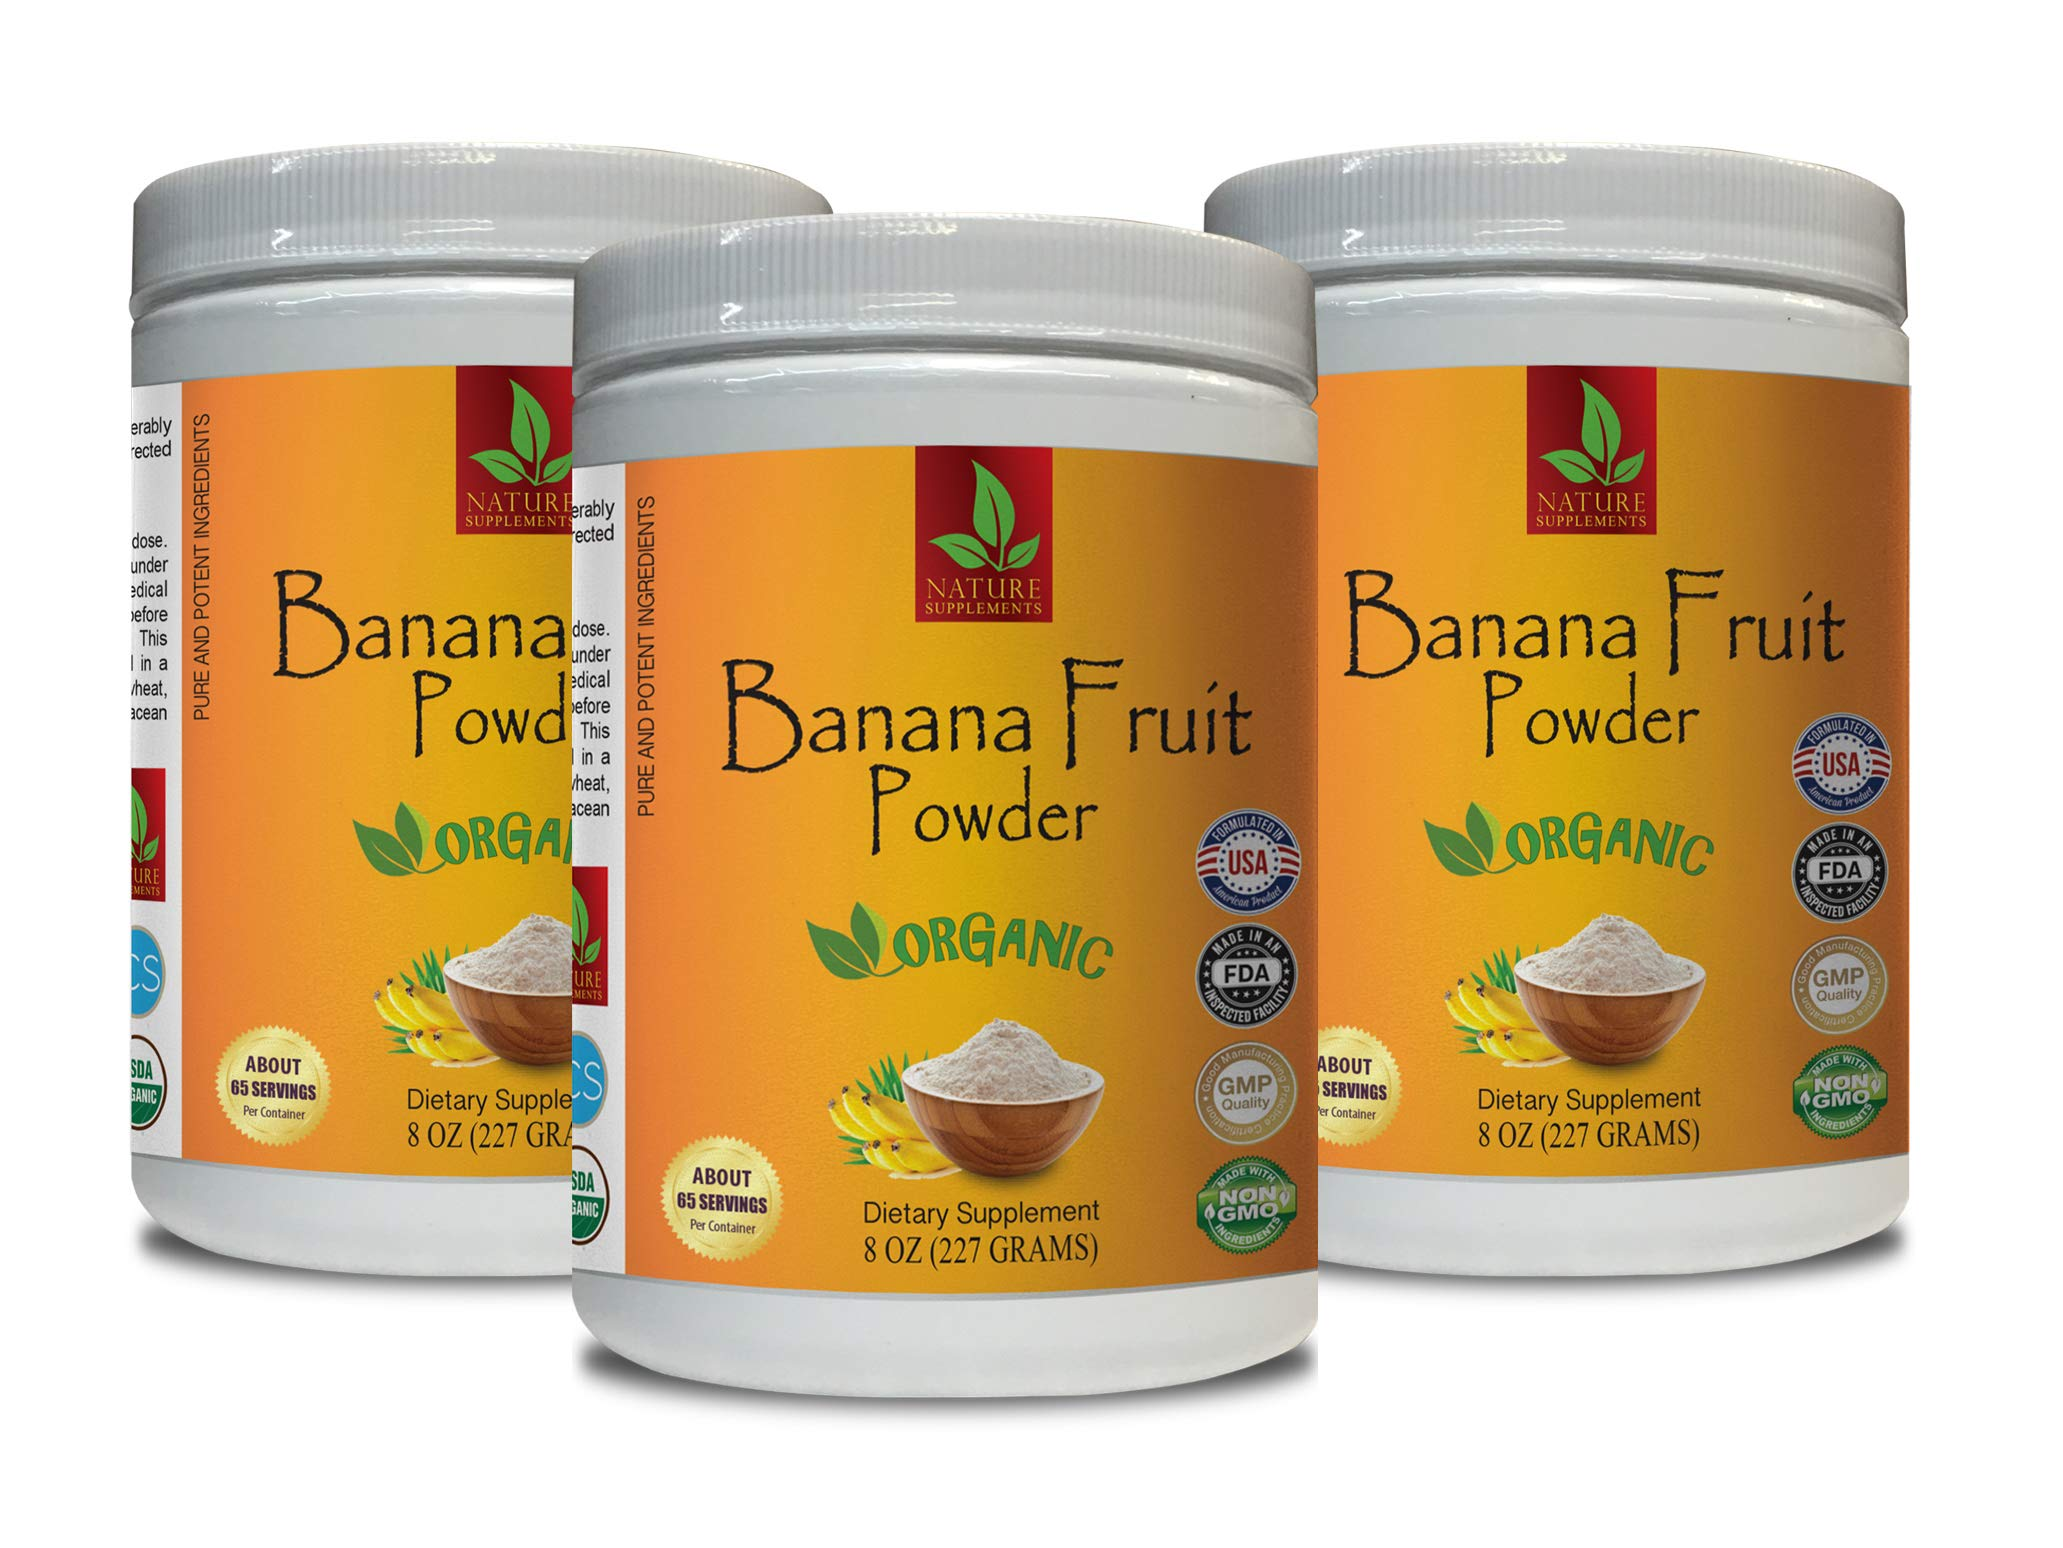 Mood Support Powder - Banana Fruit Organic Powder - Pure and Potent Ingredients - Digestive Health - 3 Cans 24 OZ (195 Servings)